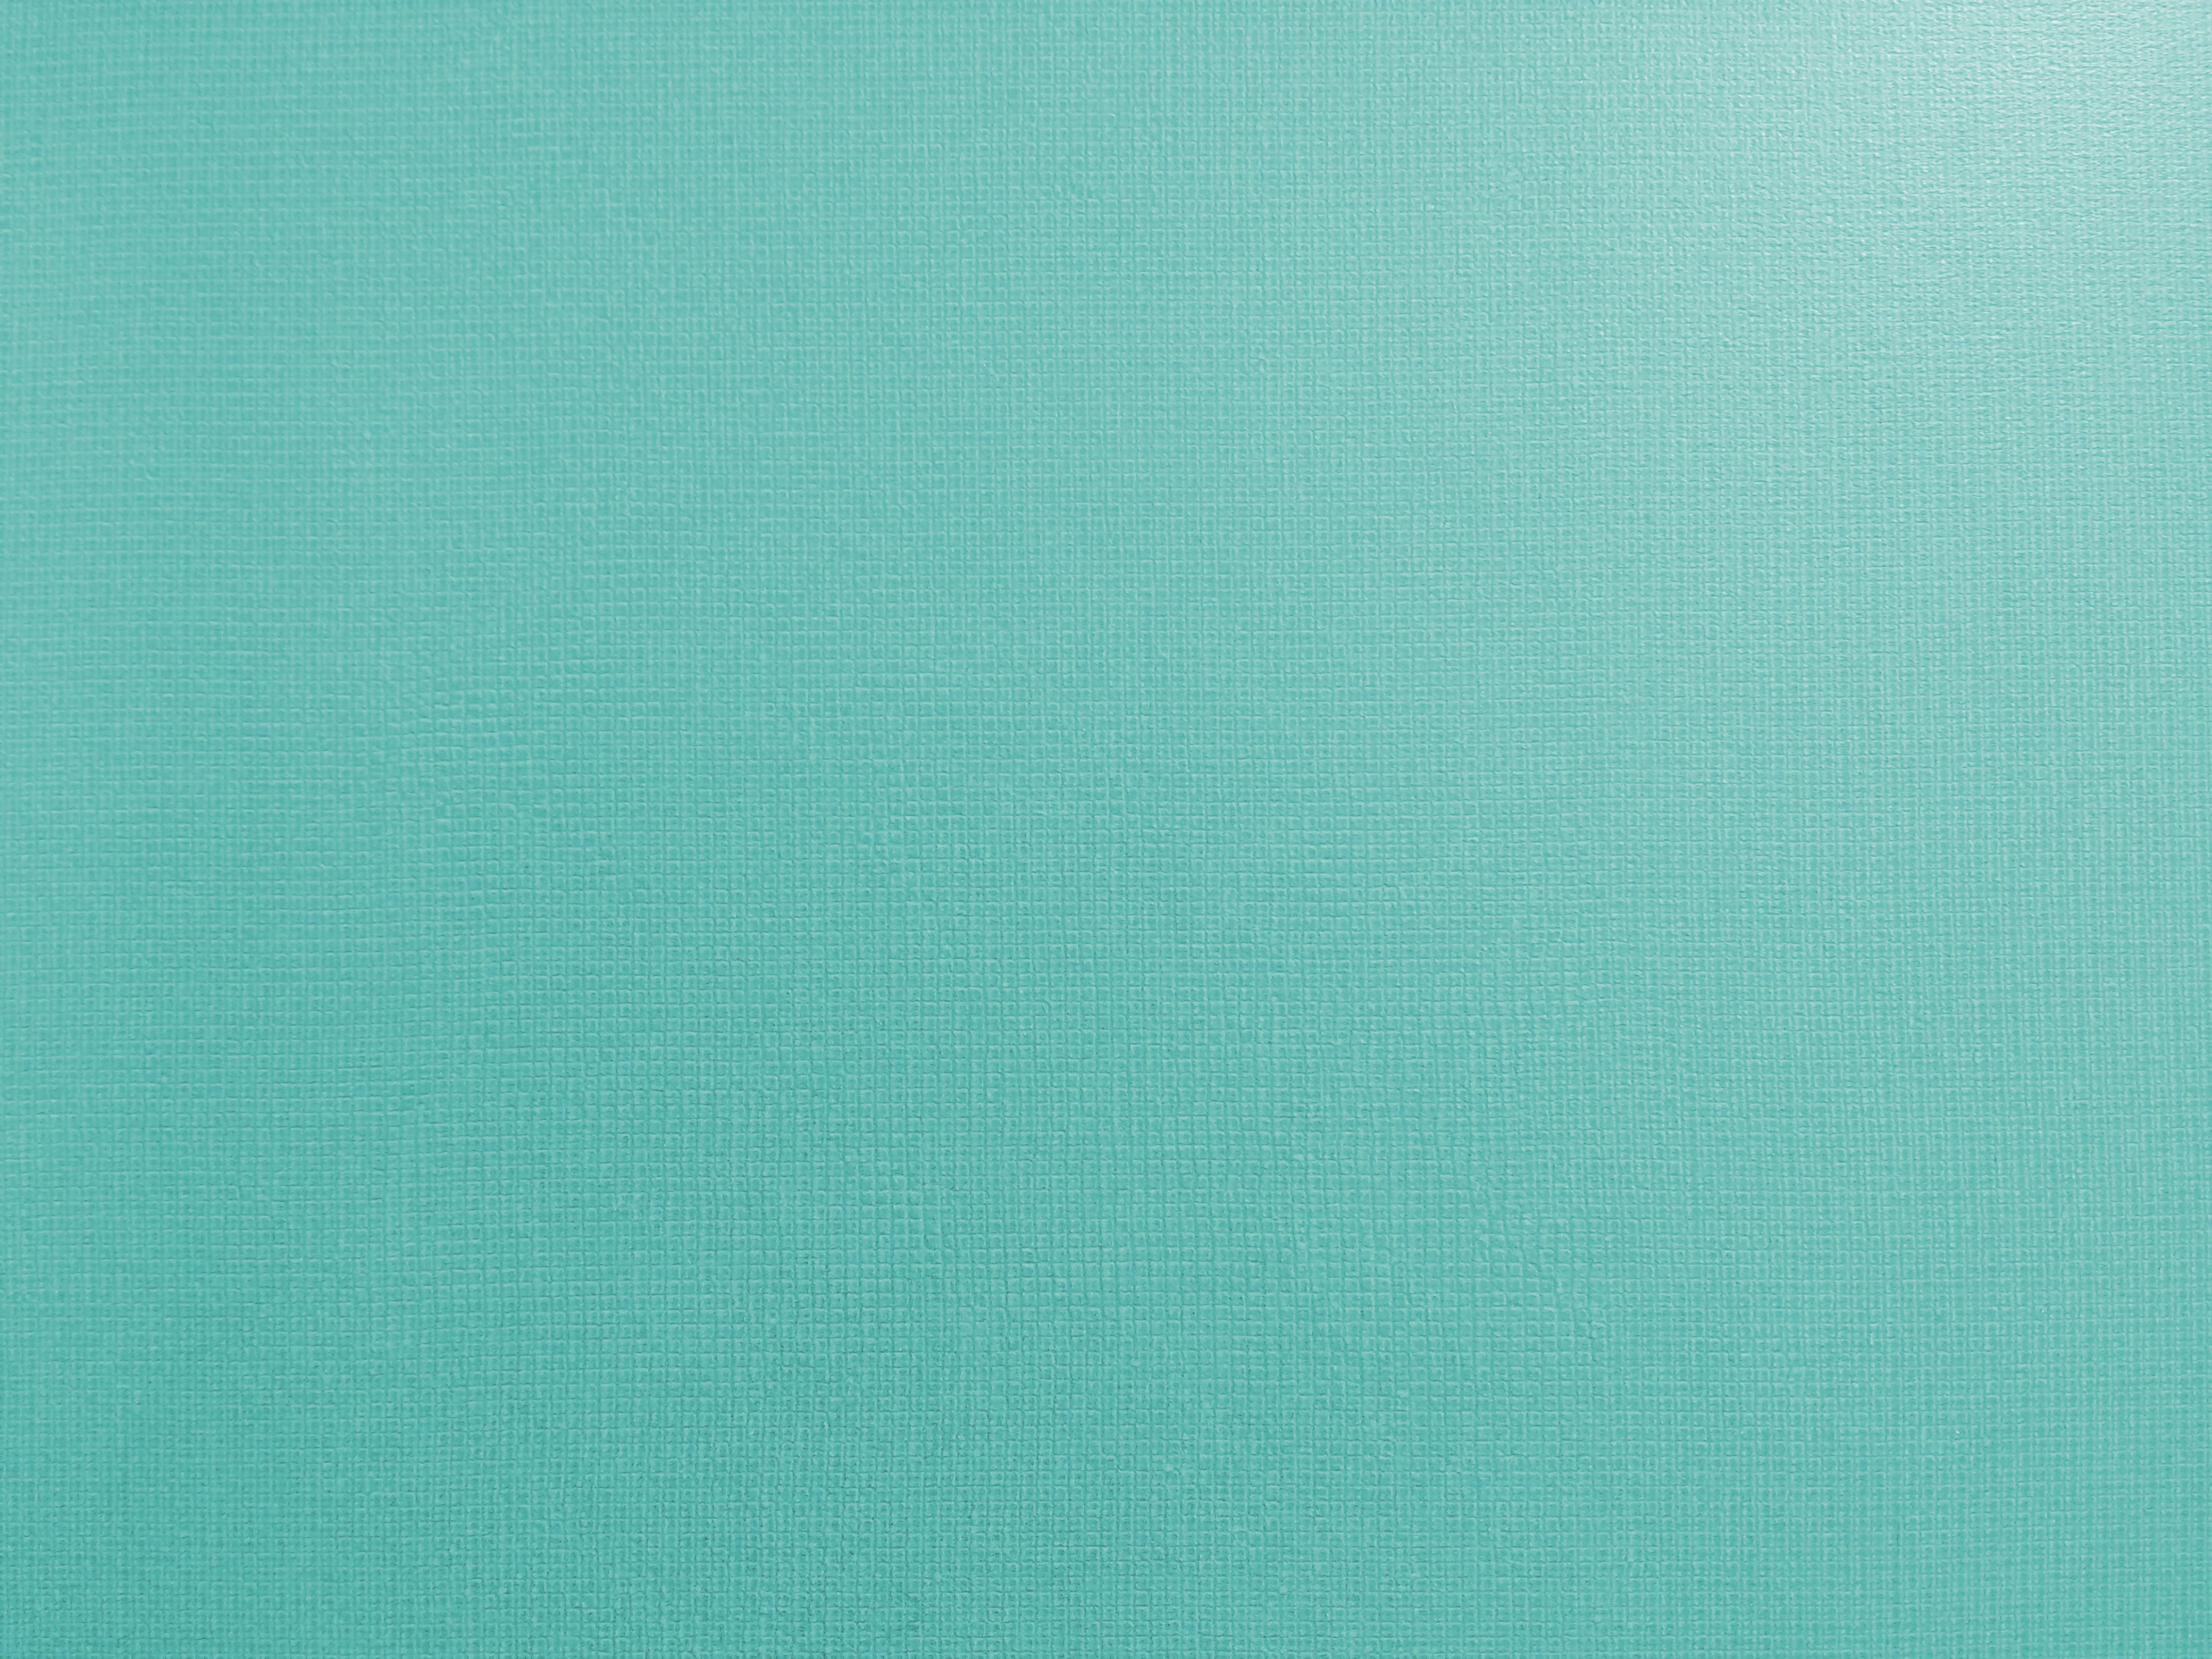 The Texture Of Teal And Turquoise: Teal Or Turquoise Plastic With Square Pattern Texture